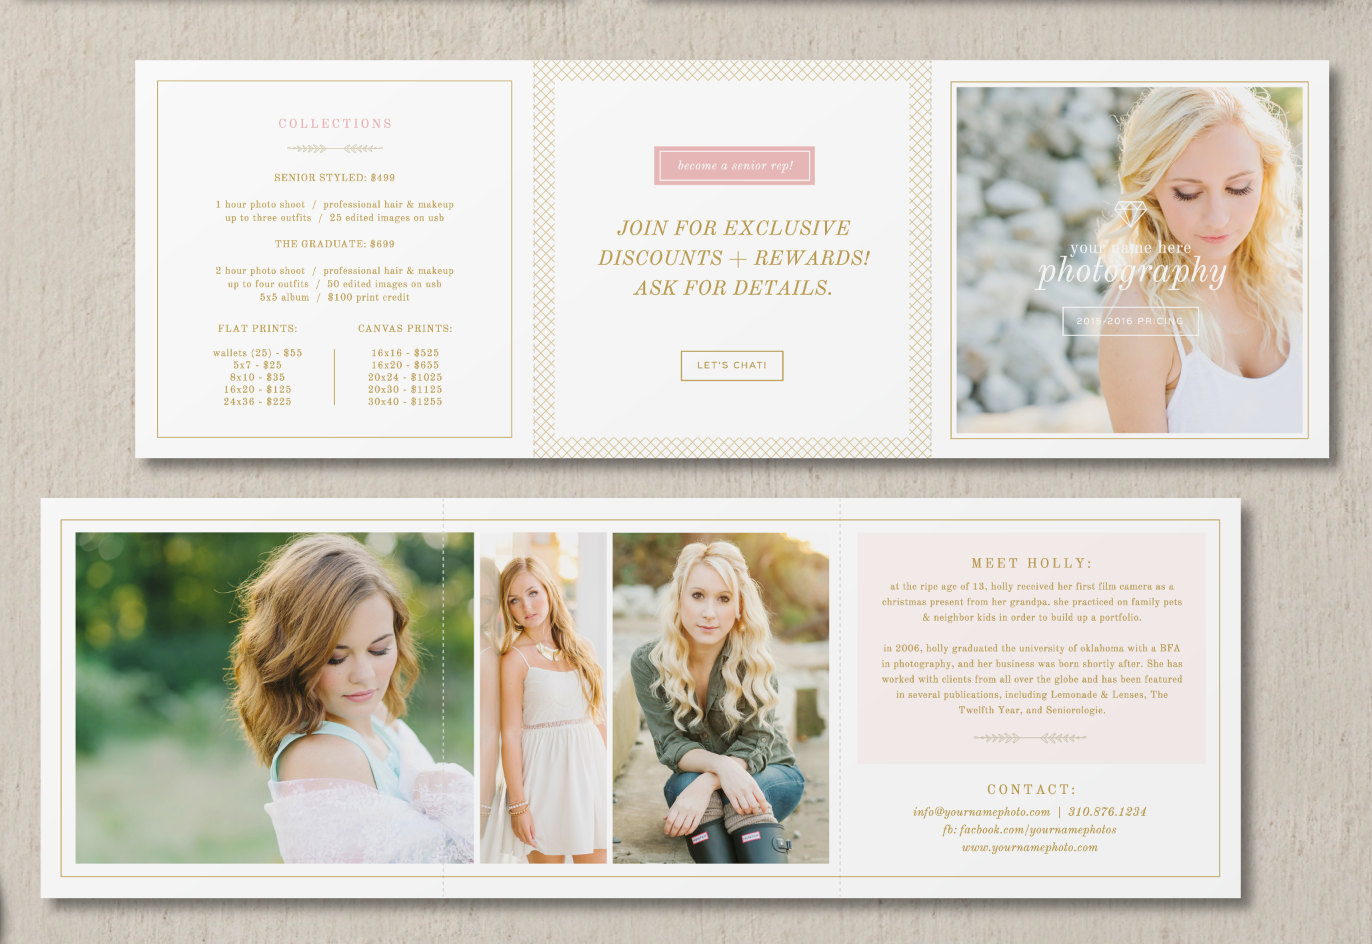 Photography Price Template - Digital Pricing Guide - Photographer Price List